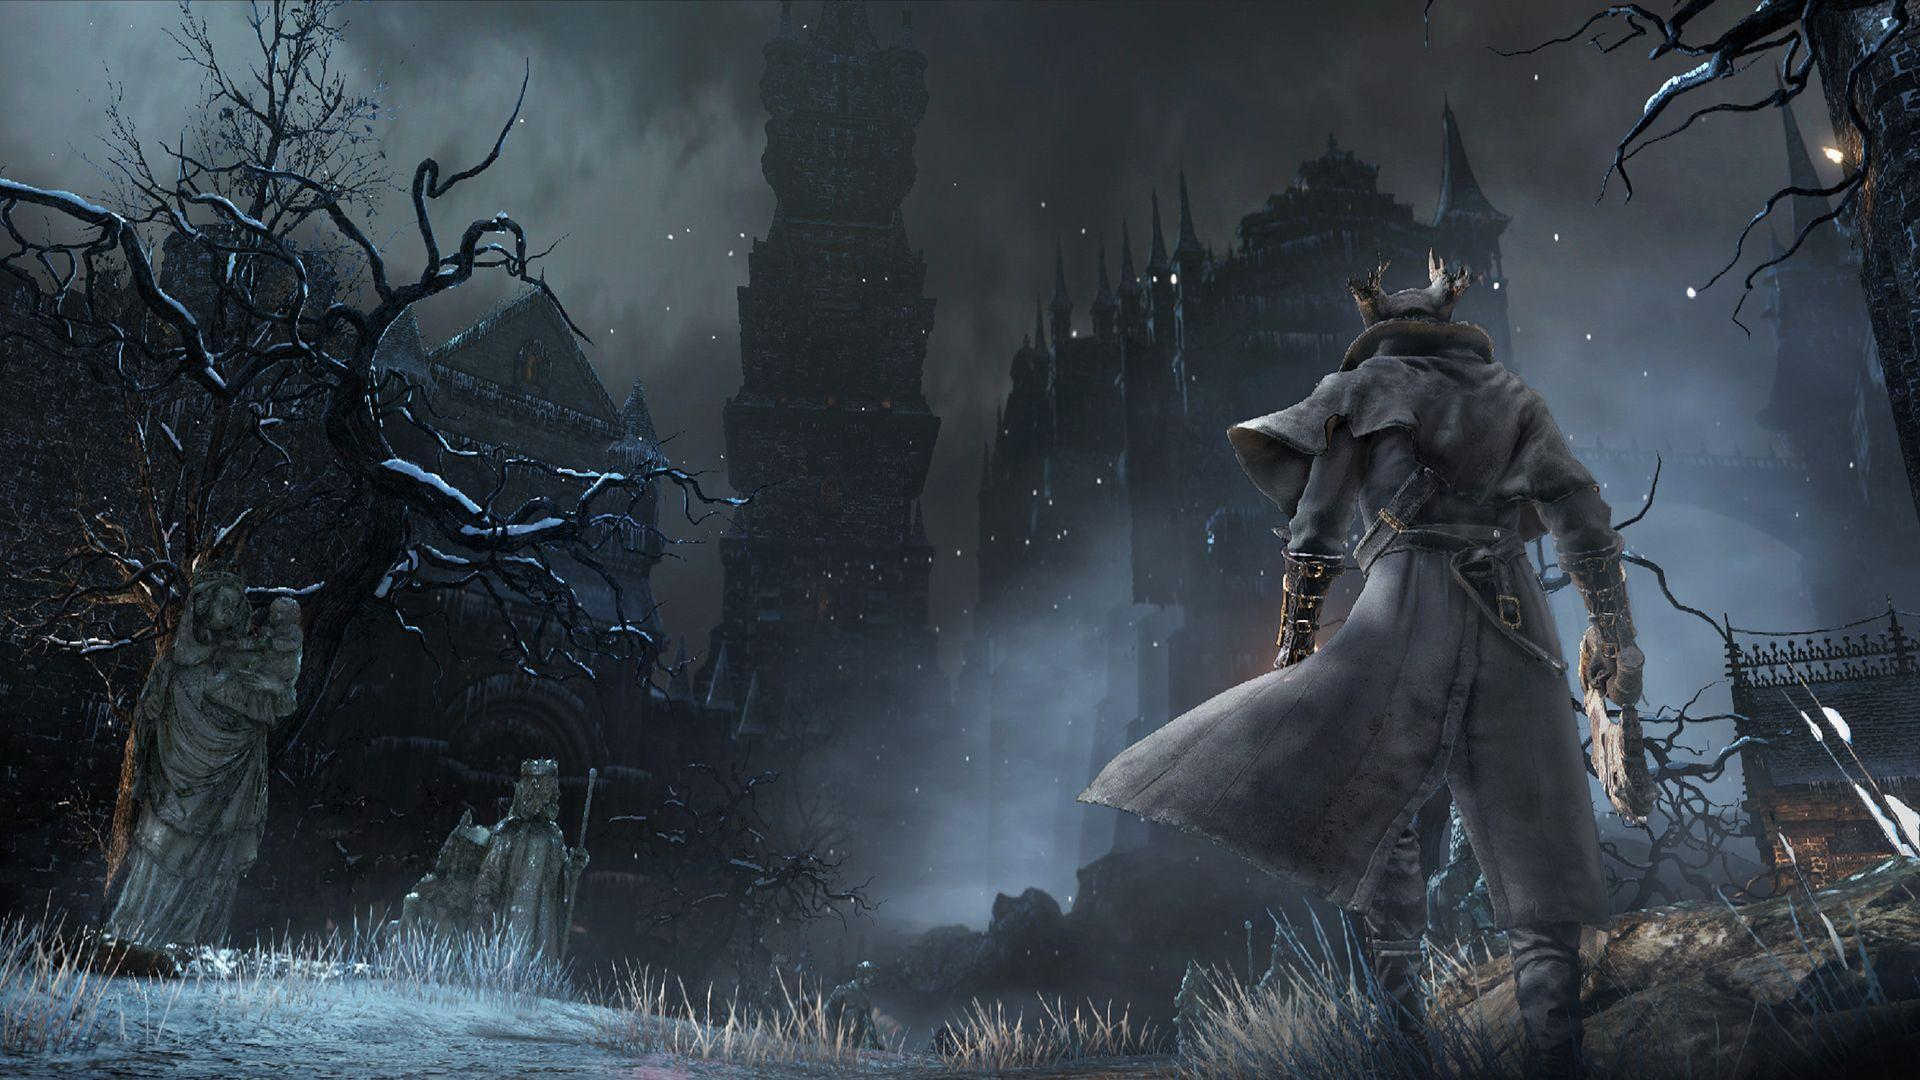 Bloodborne Wallpapers - Wallpaper Cave